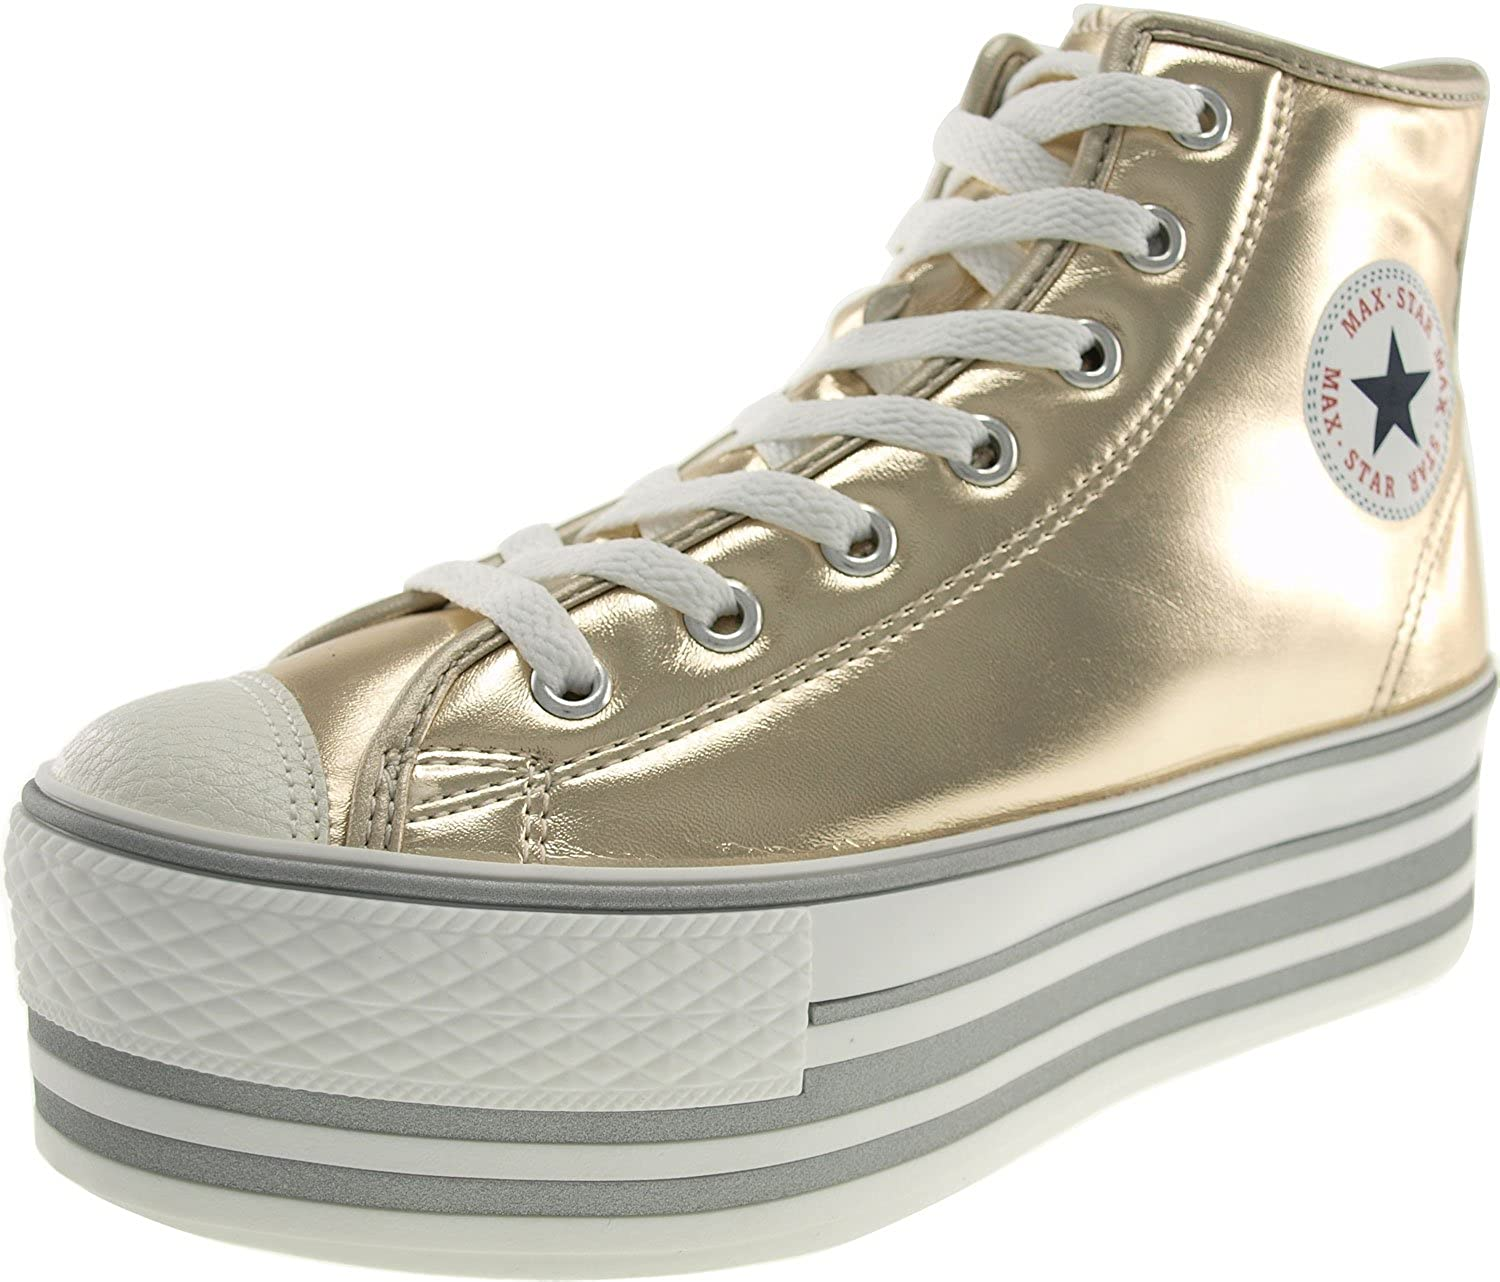 ac0a4216c667 Amazon.com | Maxstar Women's C50 7 Holes Zipper Platform PU High Top  Sneakers | Fashion Sneakers